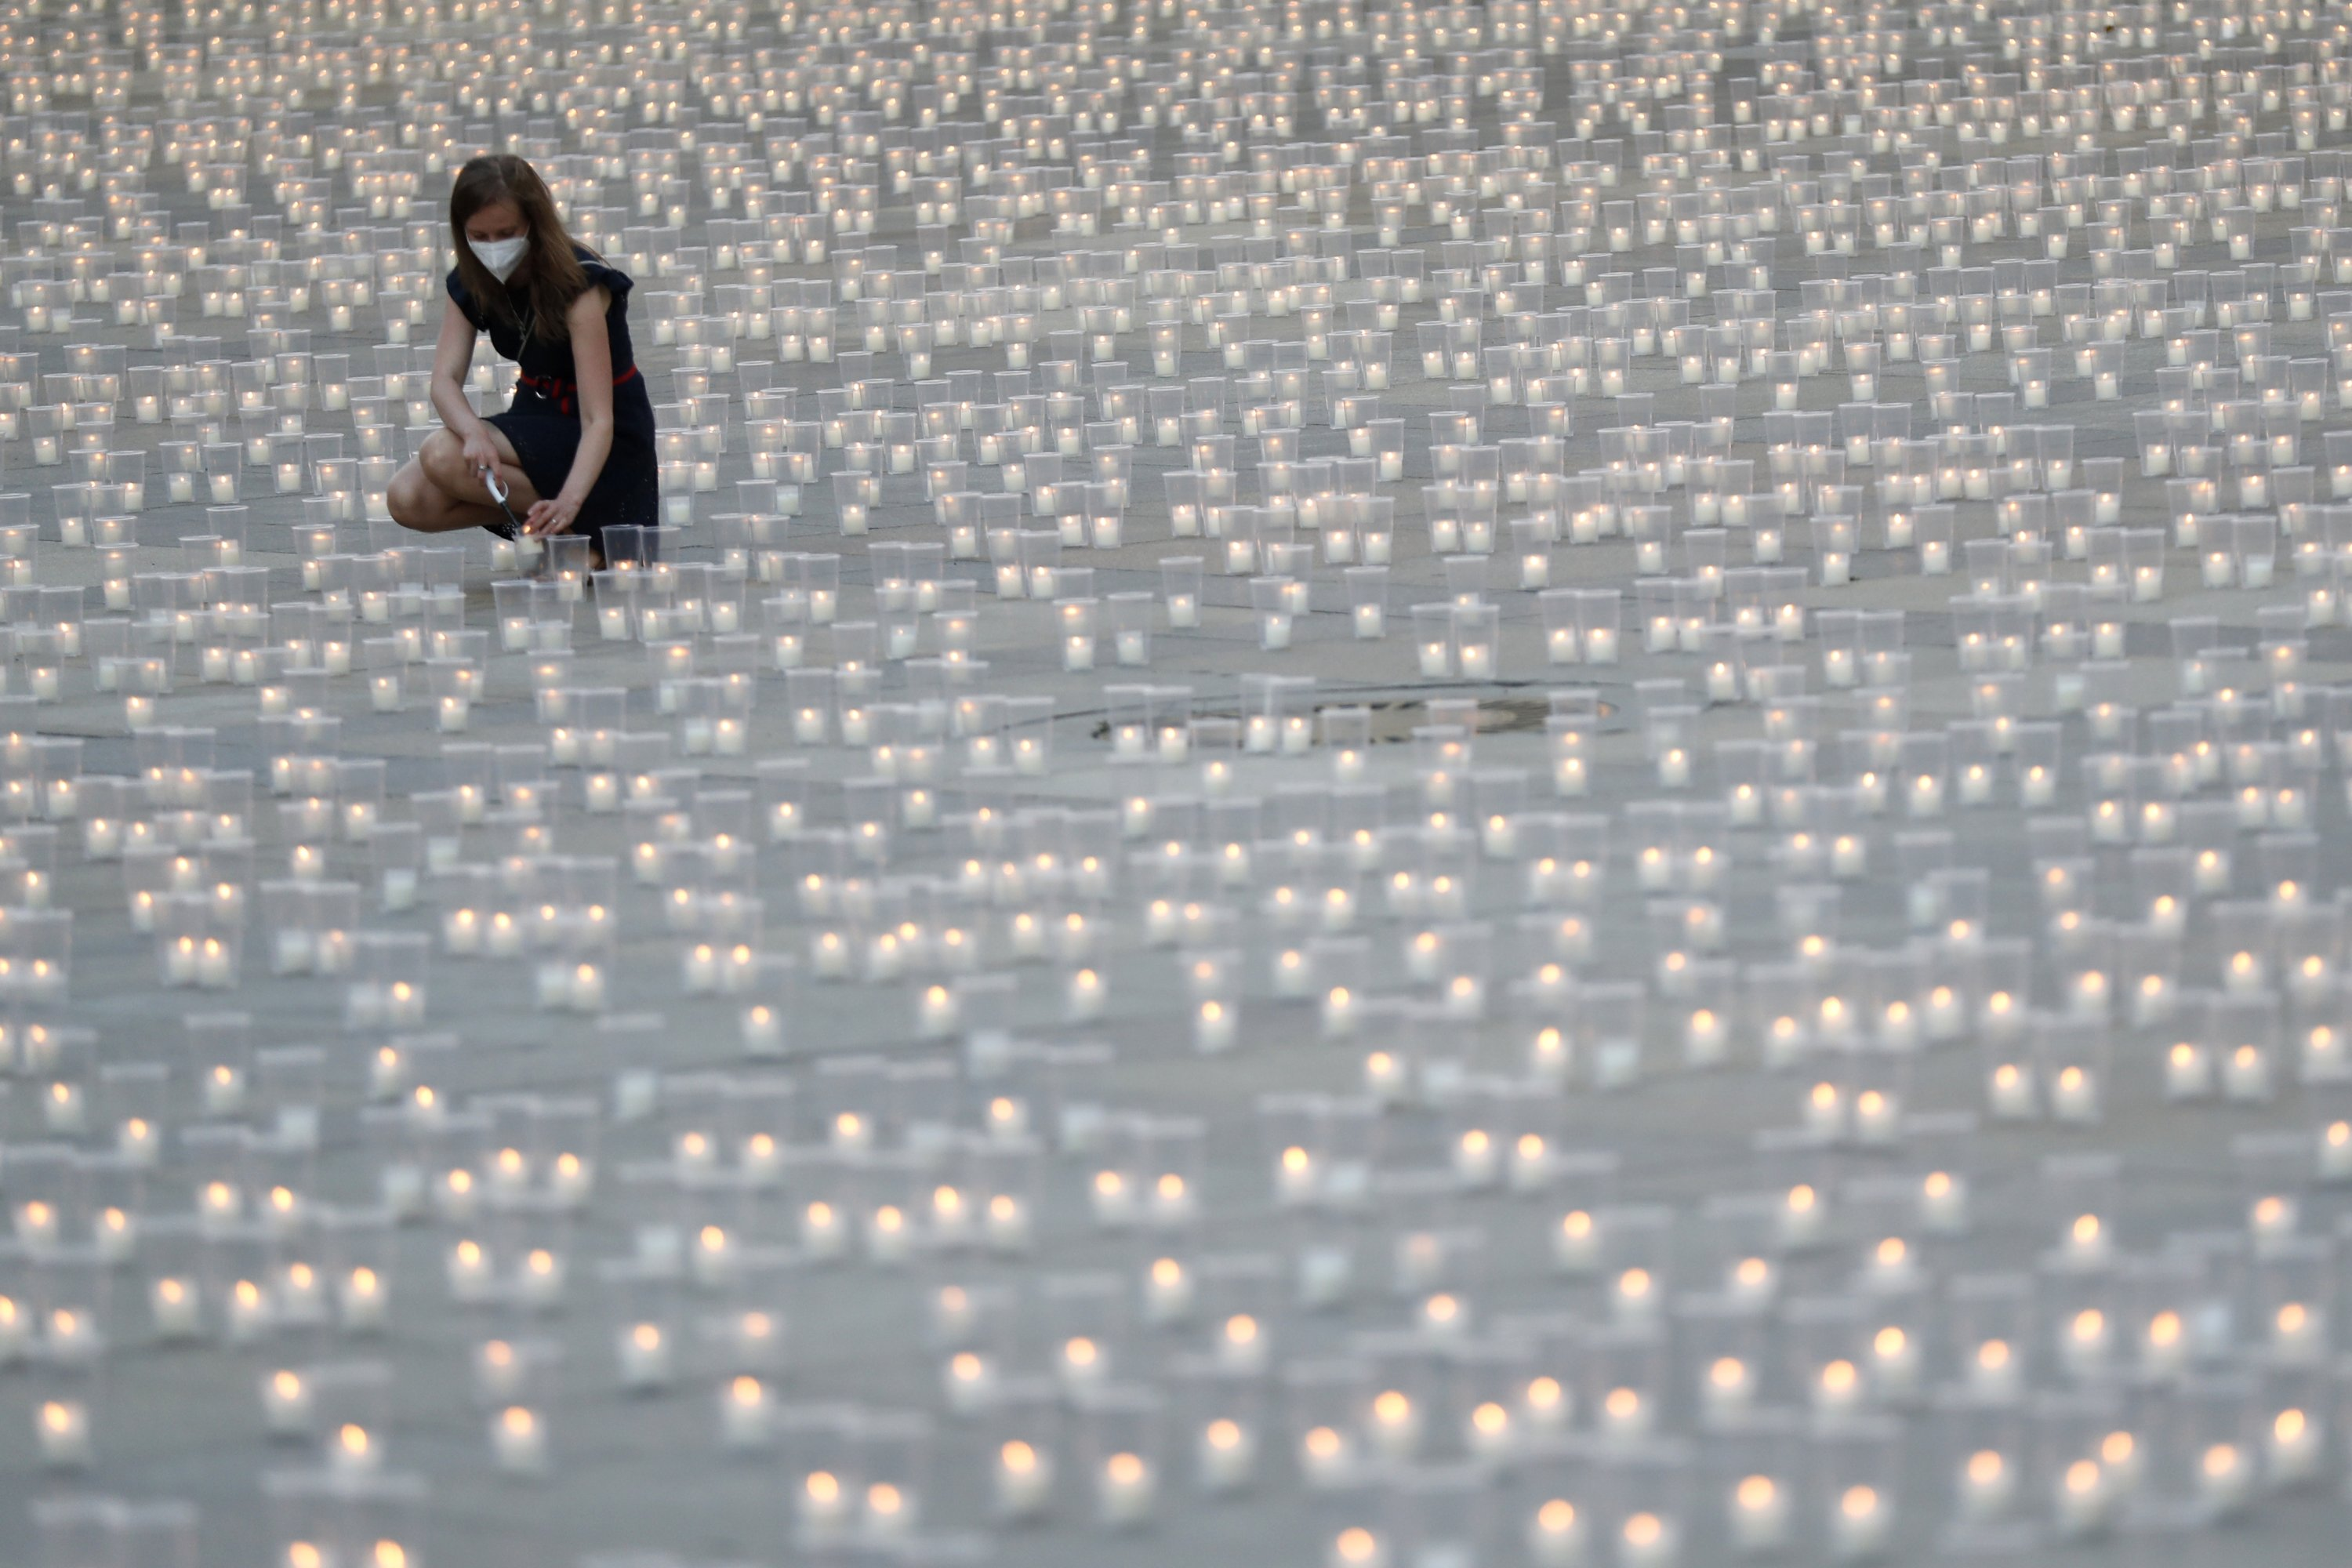 A woman lights a candle to commemorate victims of the COVID-19 pandemic at the Prague Castle in Prague, Czech Republic, May 10, 2021. (AP Photo)